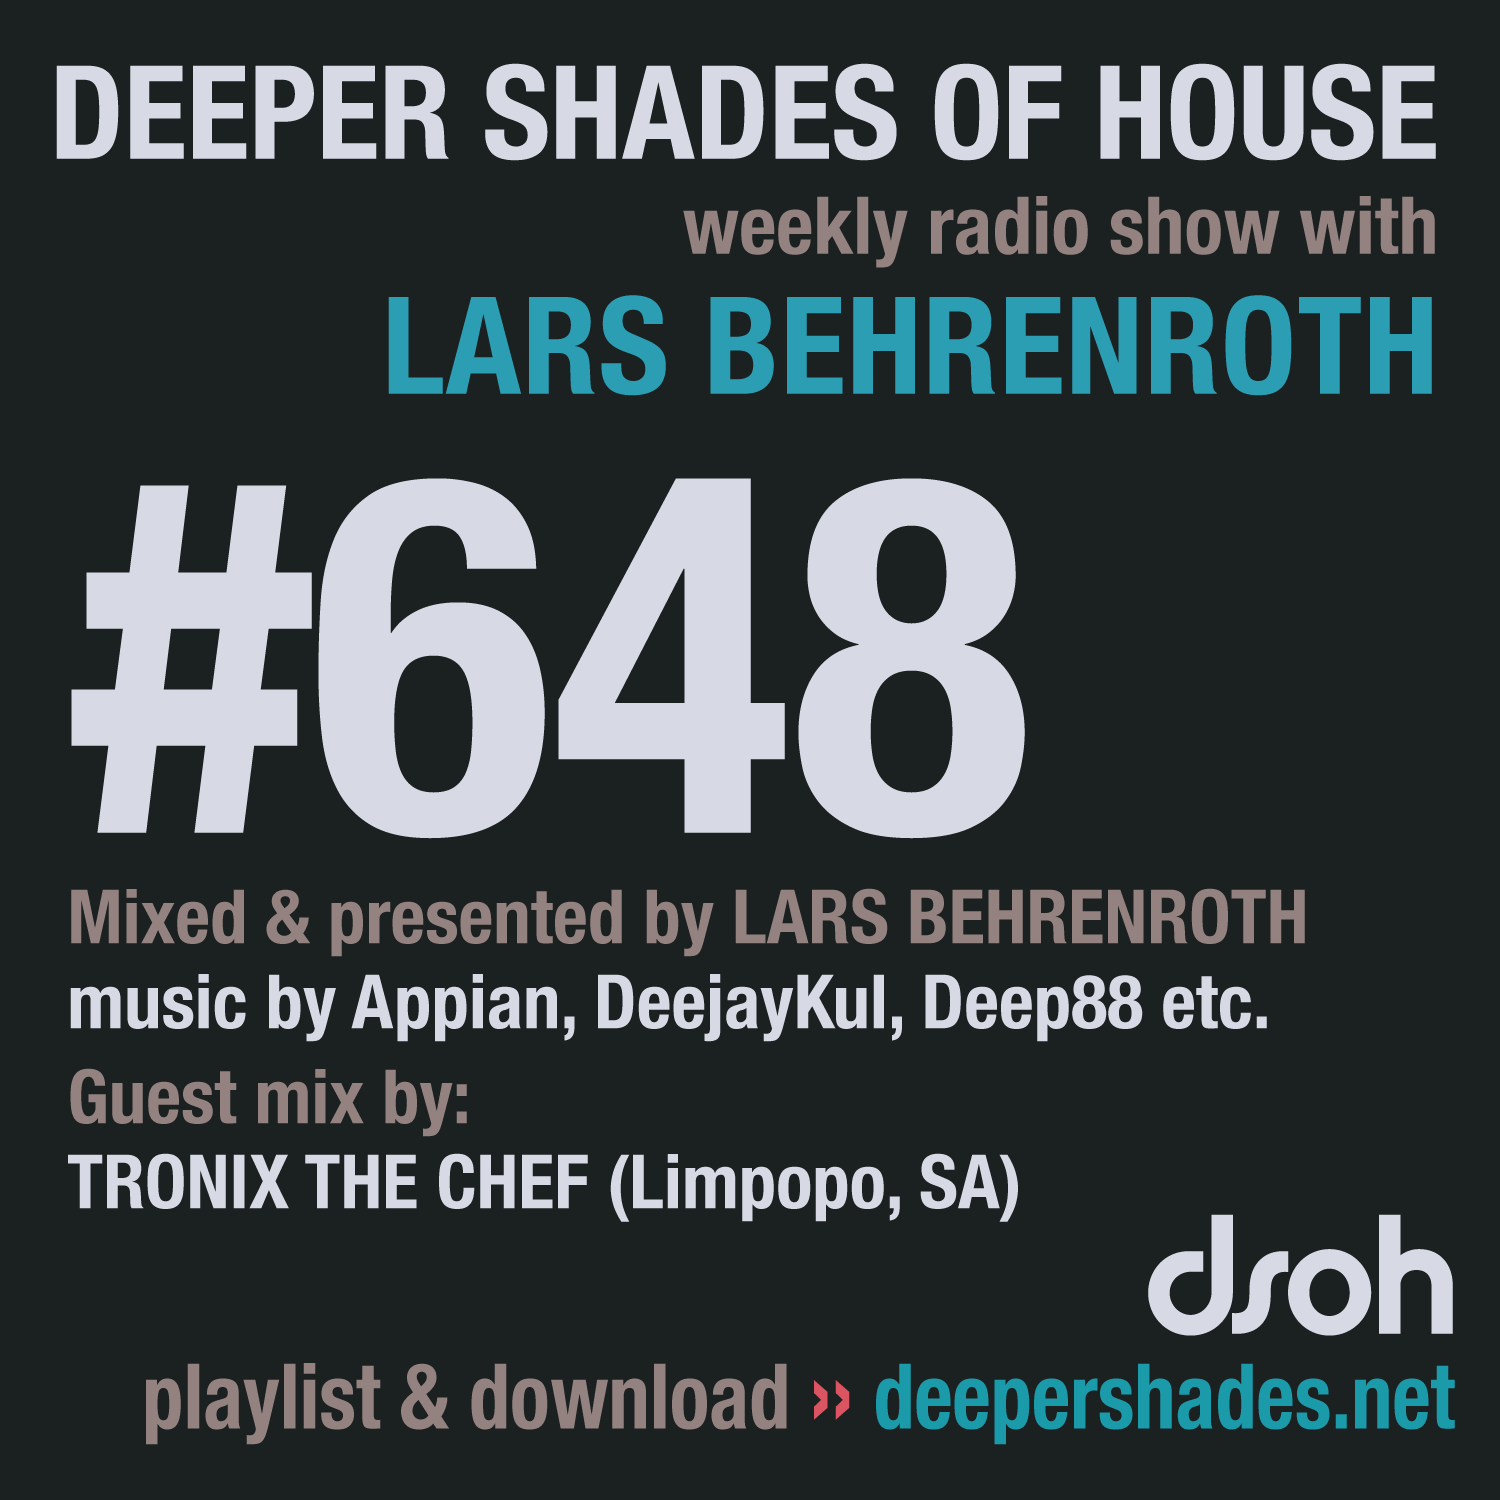 Deeper Shades Of House 648